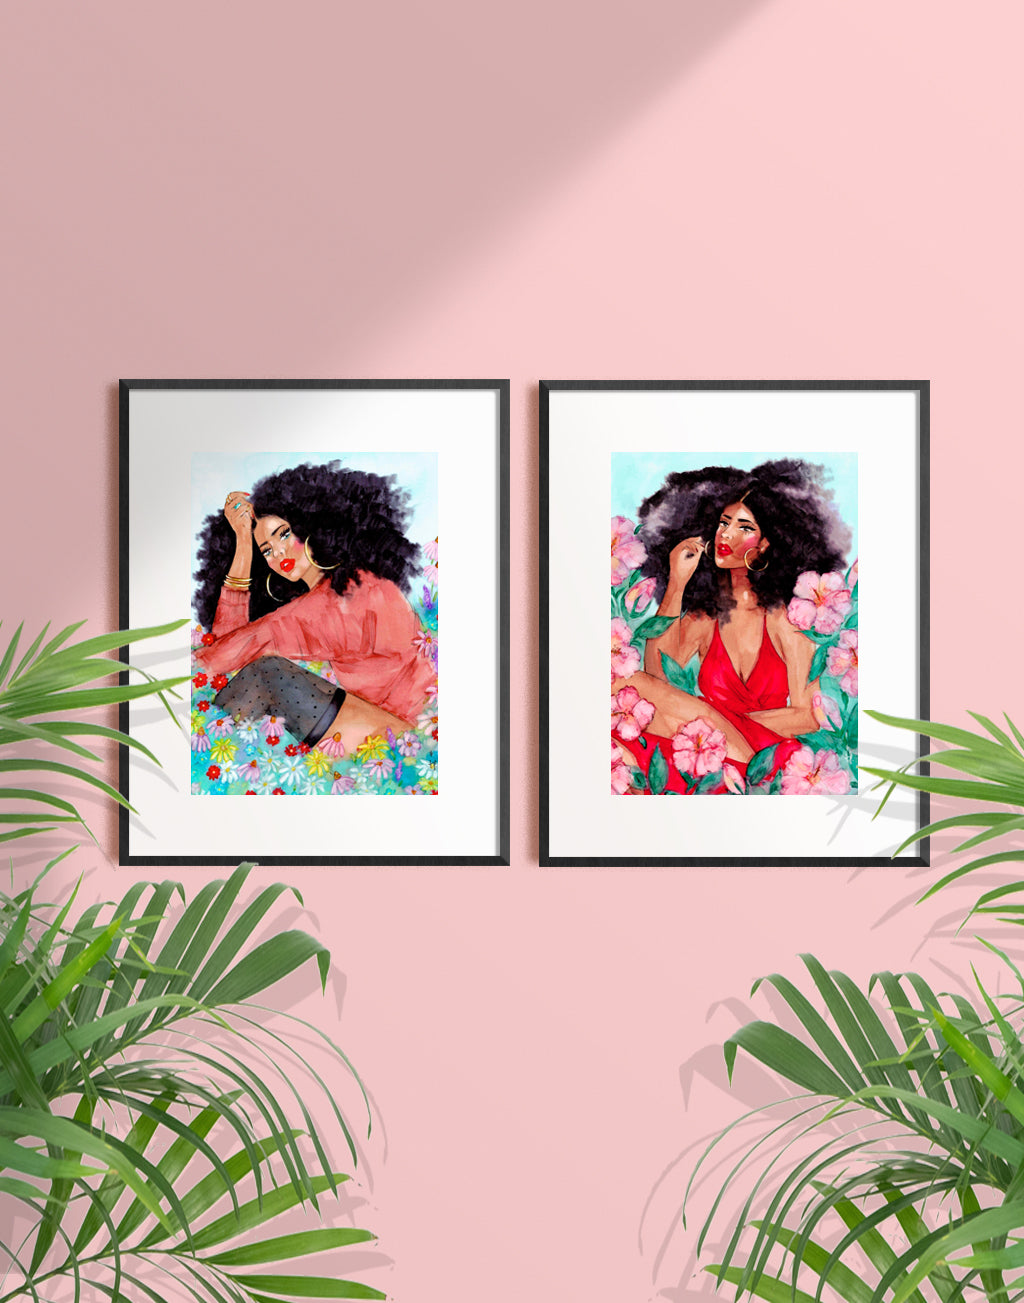 Framed illustration of a beautiful woman among hibiscus flowers by Tatiana Poblah